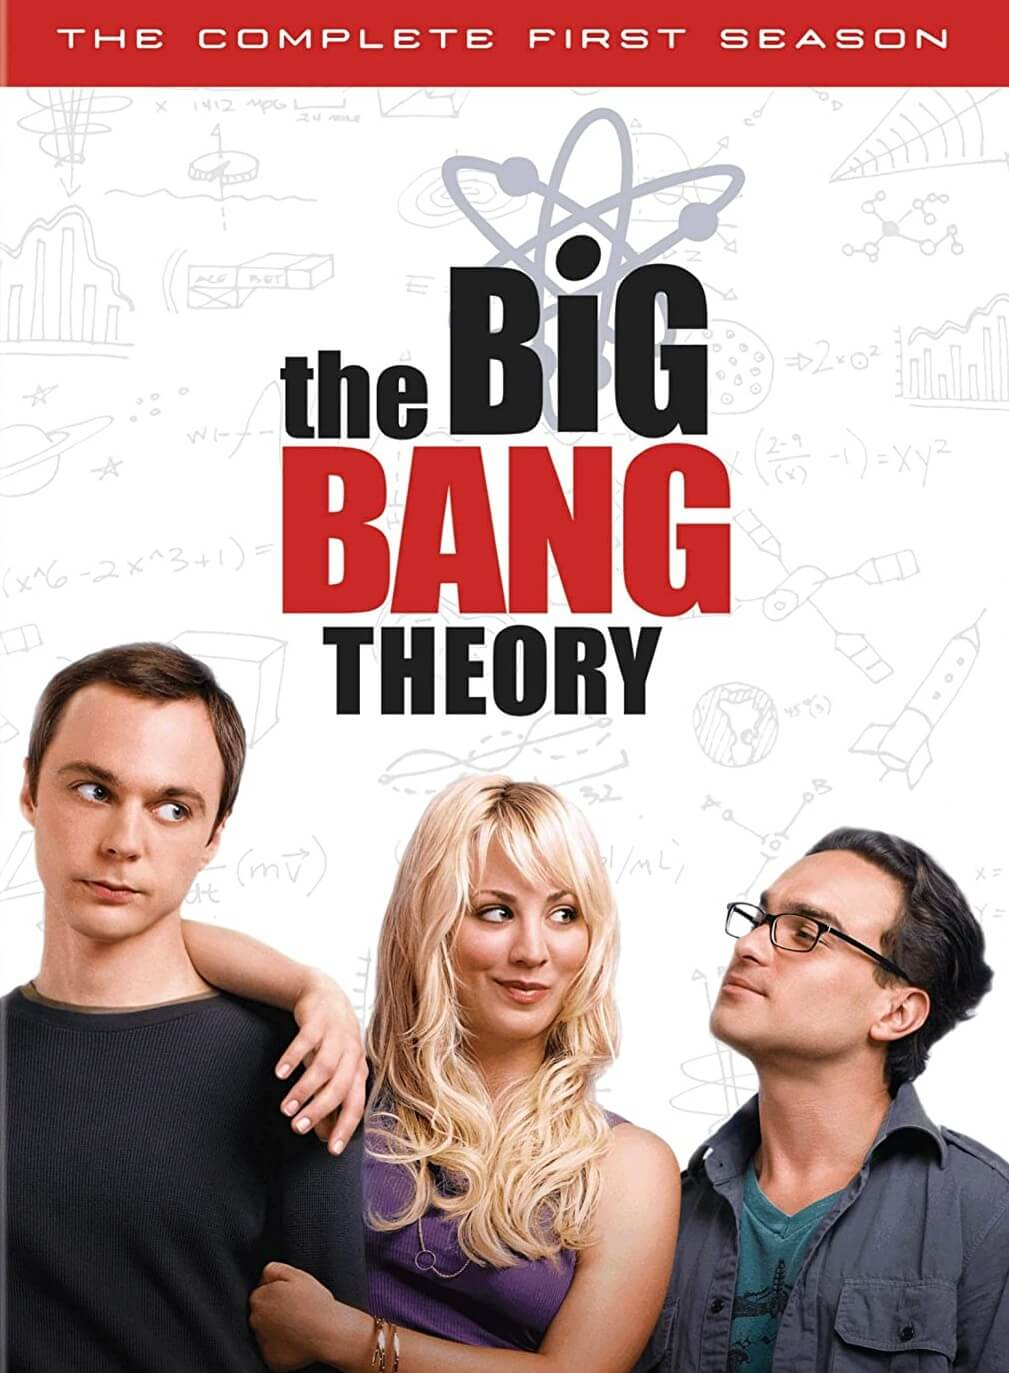 The Big Bang Theory S01 E07